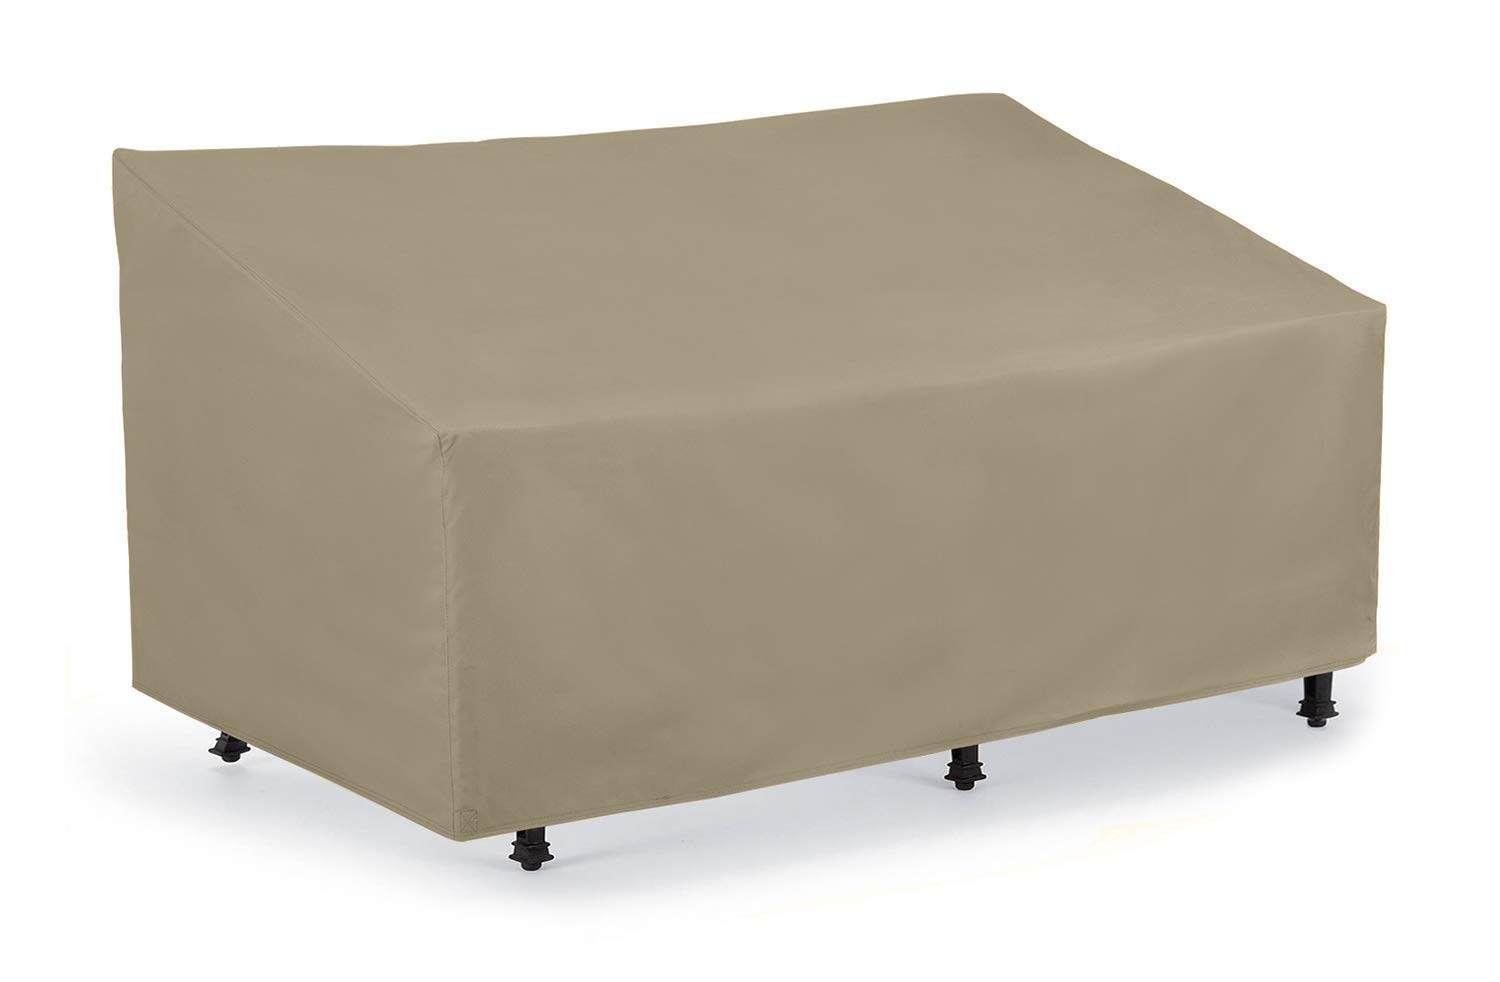 SunPatio Outdoor Patio Loveseat Sofa Cover, Waterproof Veranda Bench Cover with Seam Taped, Patio Furniture Cover with Air Vent, Light Weight, All Weather Protection, 60''L x 36''W x 30''H, Neutral Taupe by SunPatio